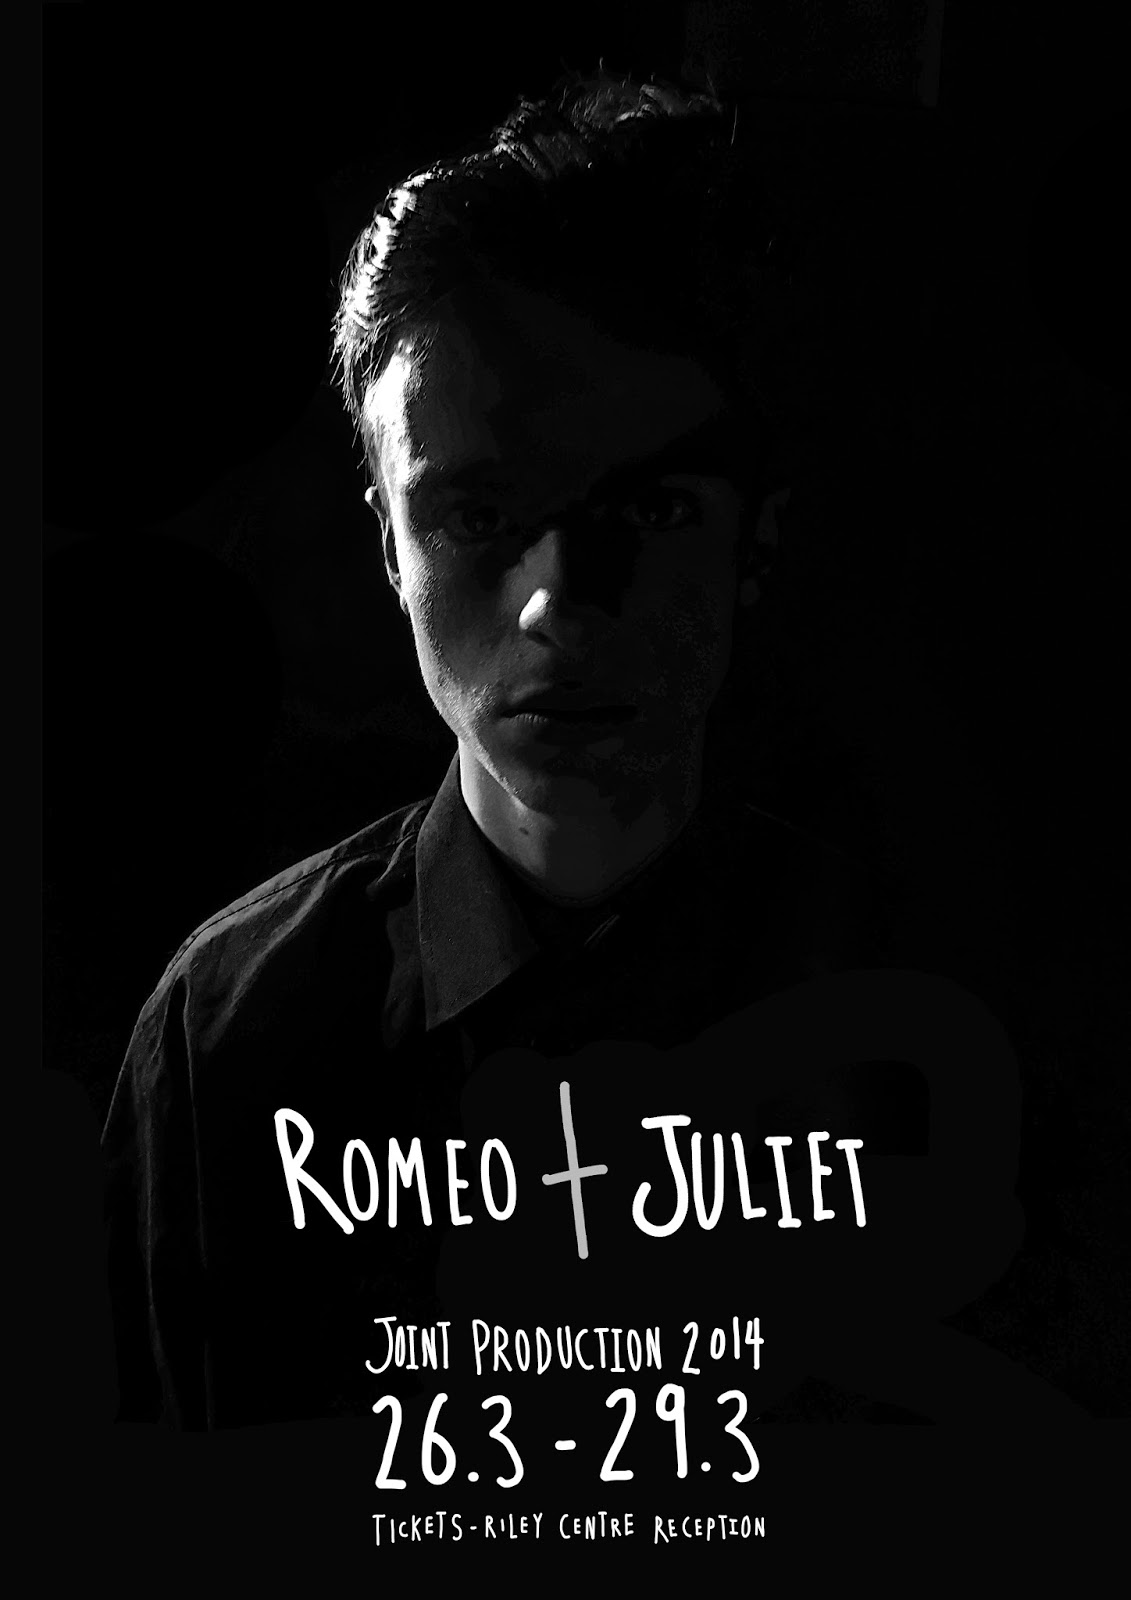 http://www.boltonschool.org/senior-boys/news/musical-romeo-and-juliet-for-all-generations/